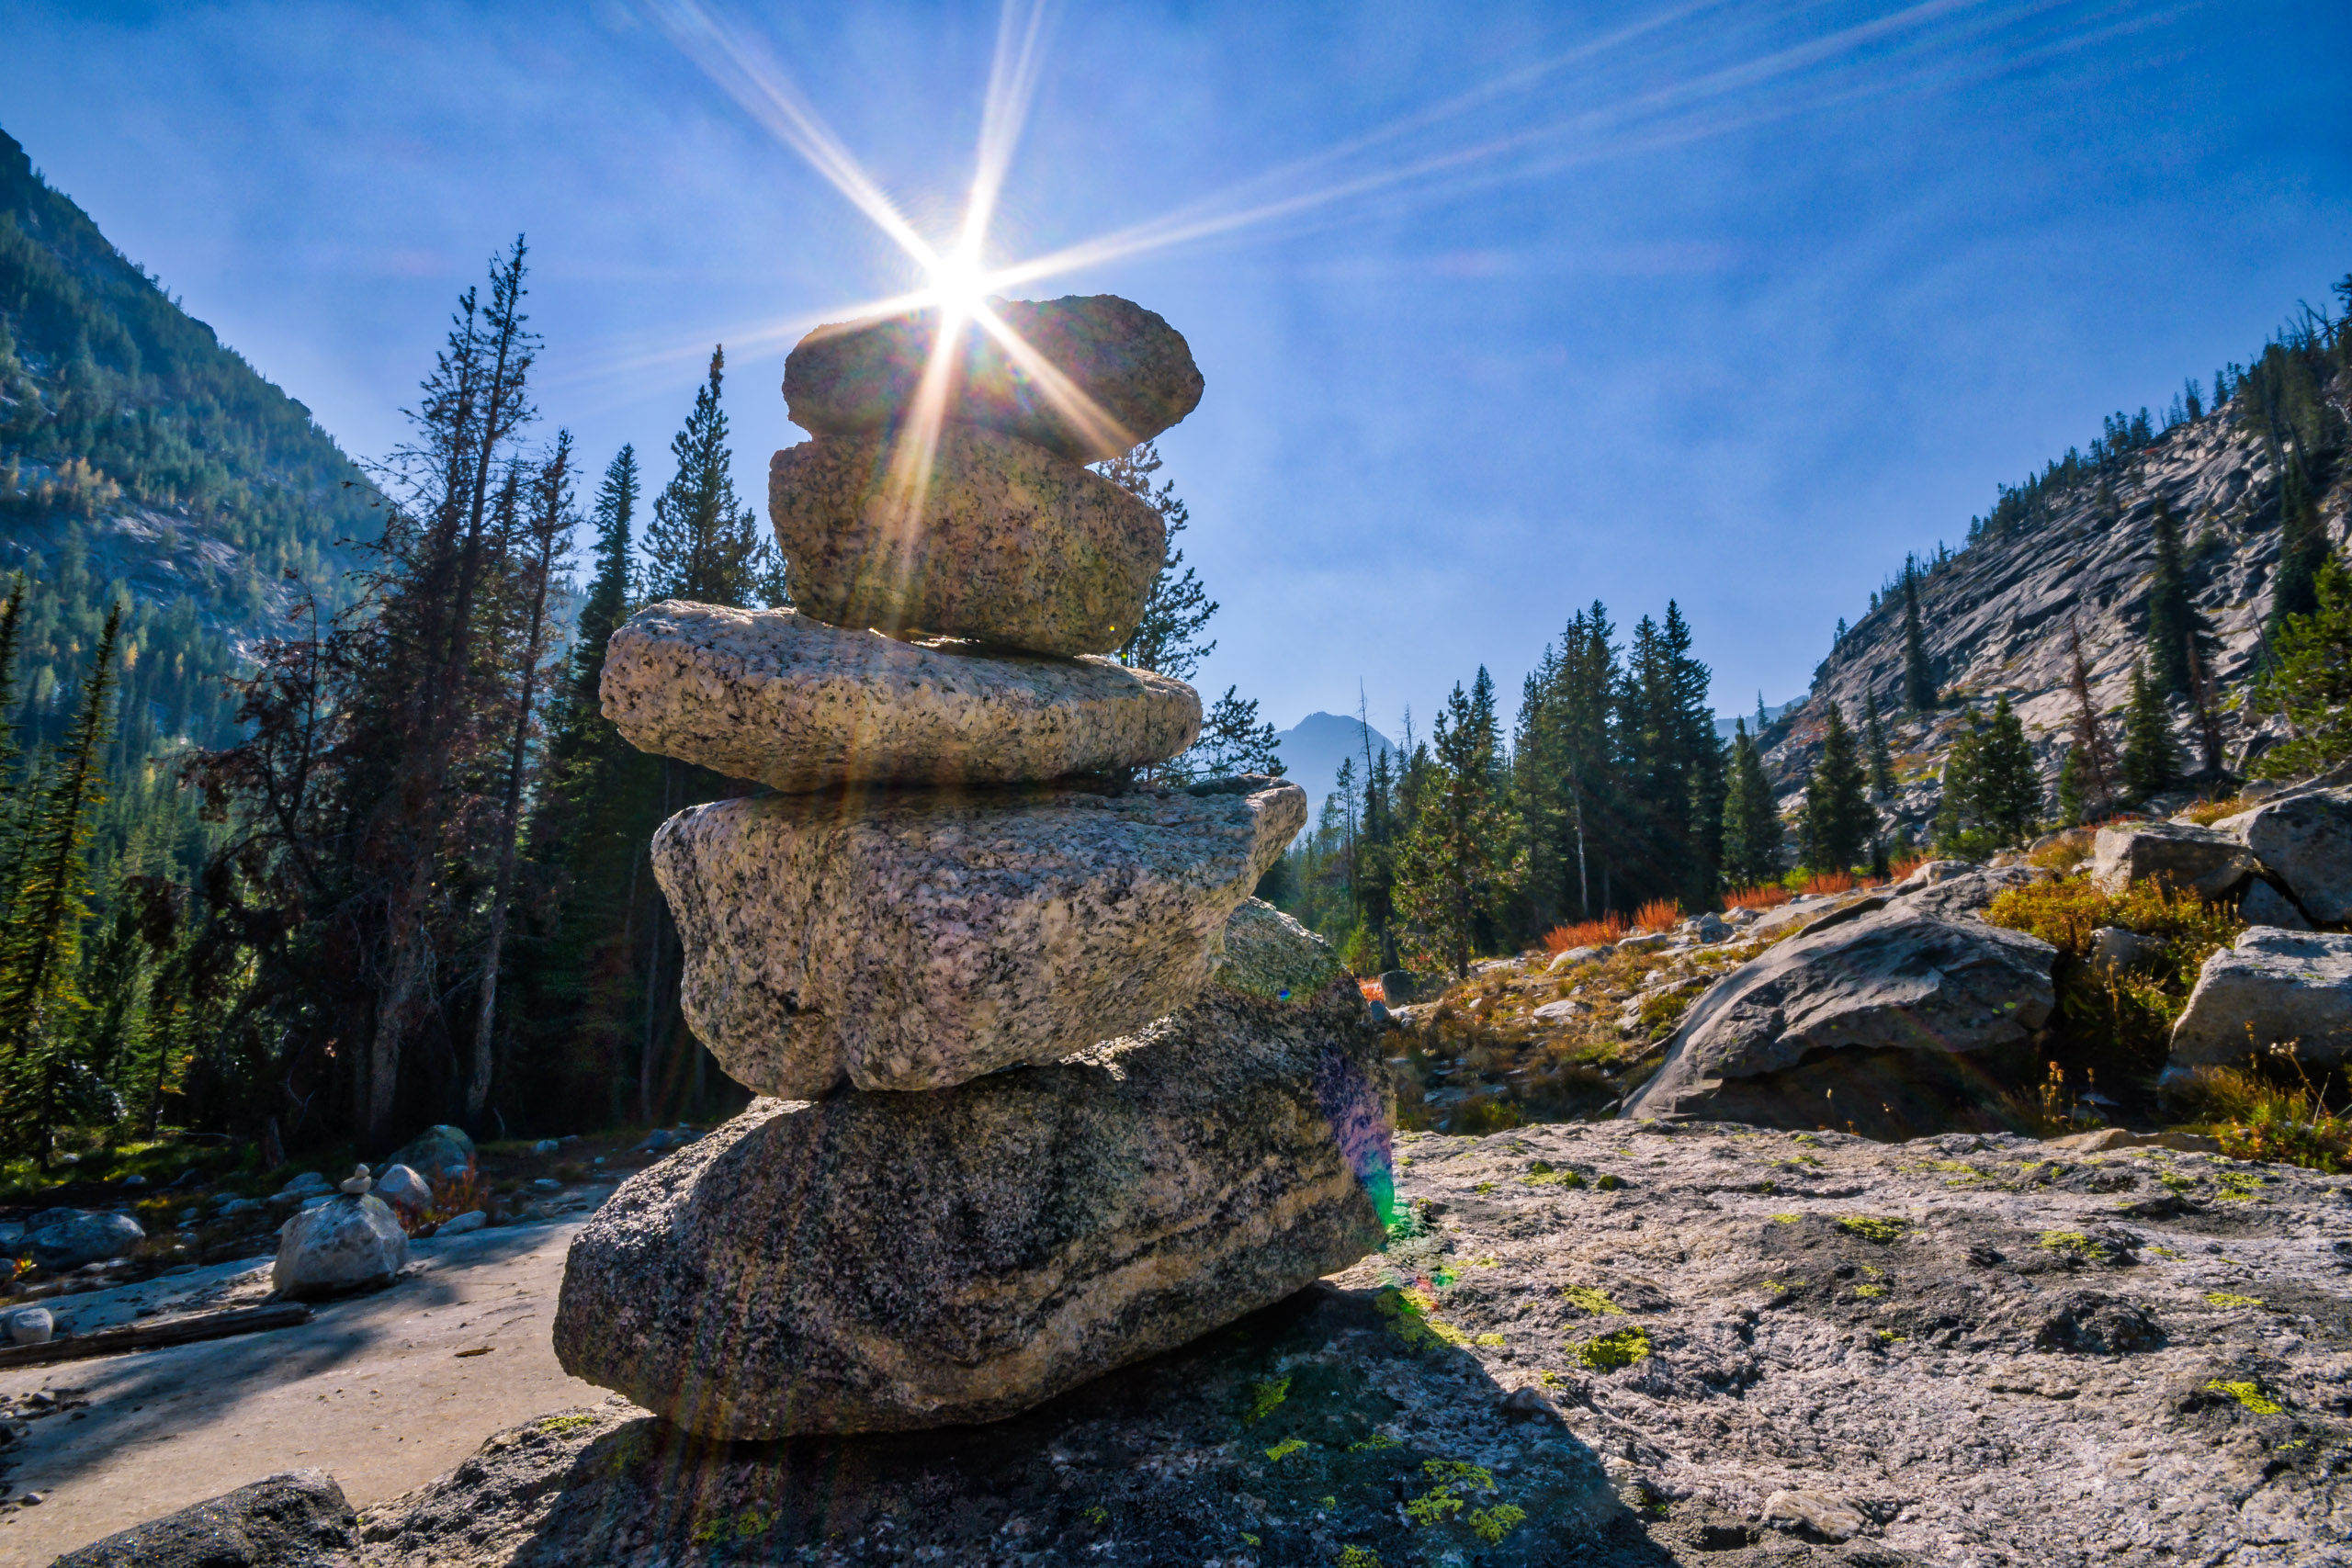 Cairn on the trail to Canyon Lake, Bitterroot Mountains, Montana - this time it is an actual trail marker across slabs of granite